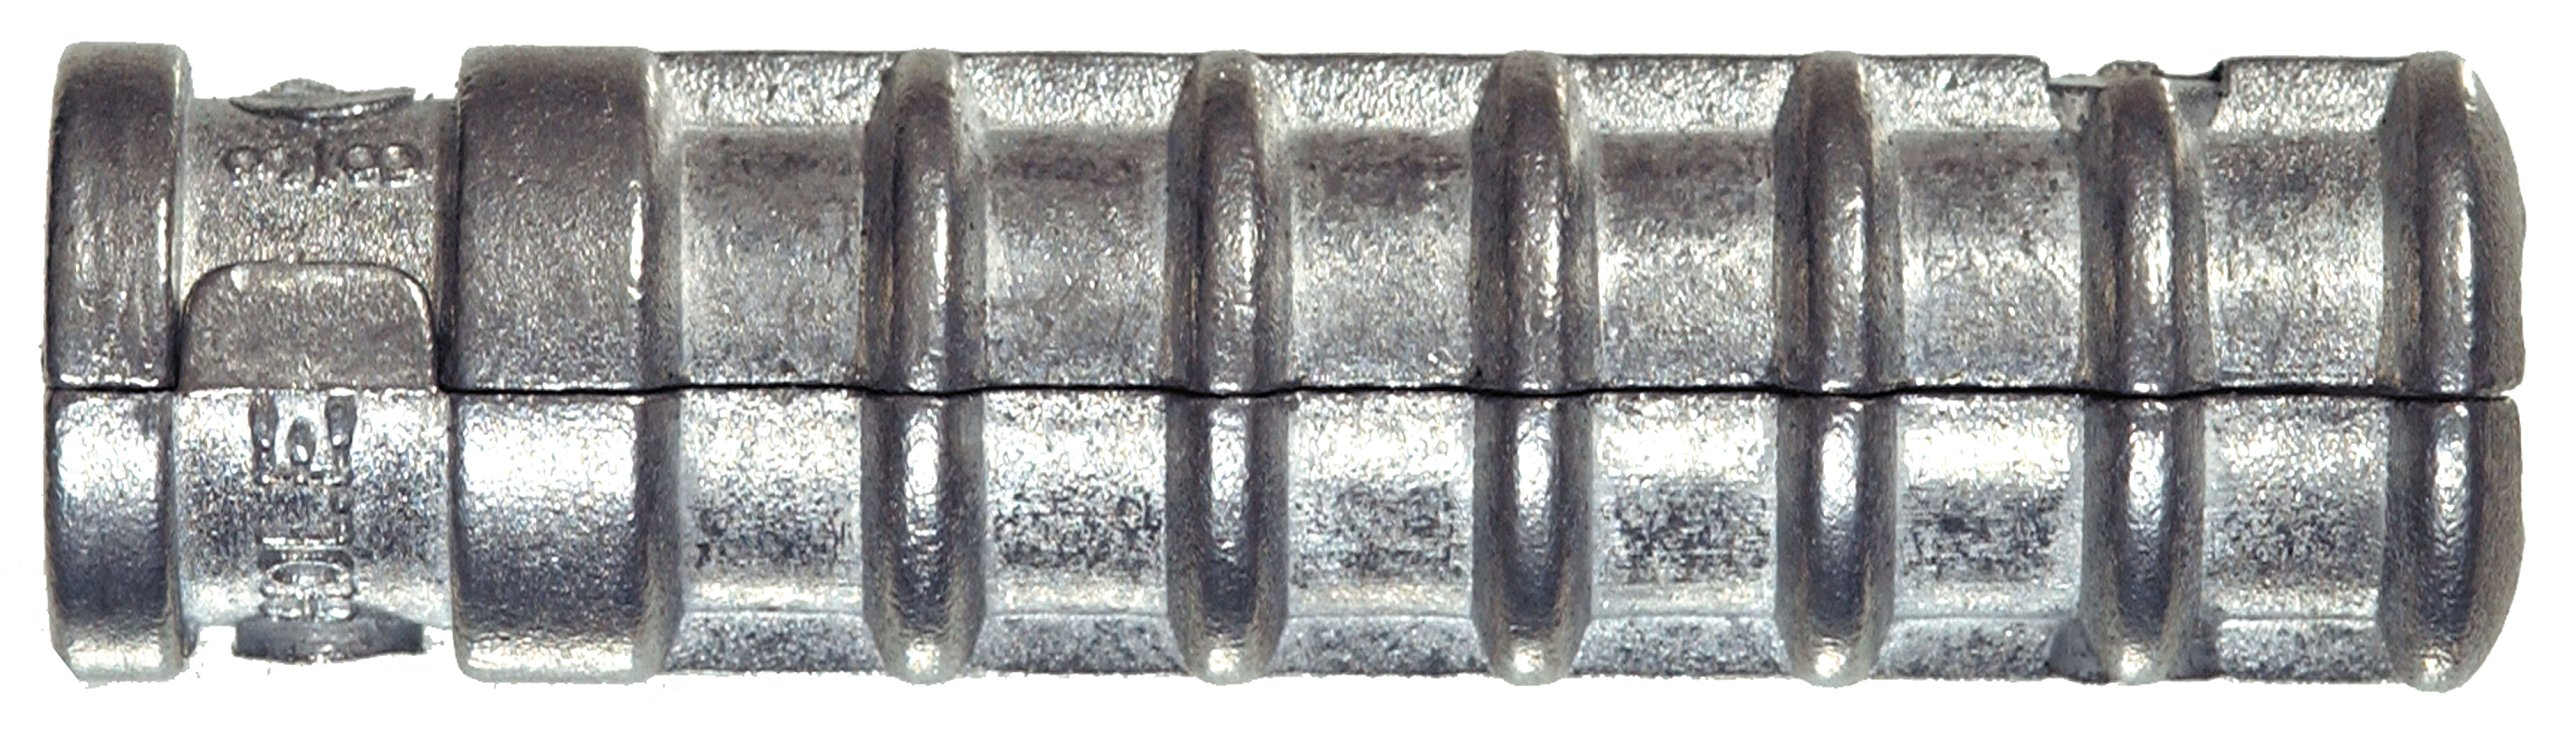 The Hillman Group 370213 Lag Shield Short, 1/2-Inch, 50-Pack